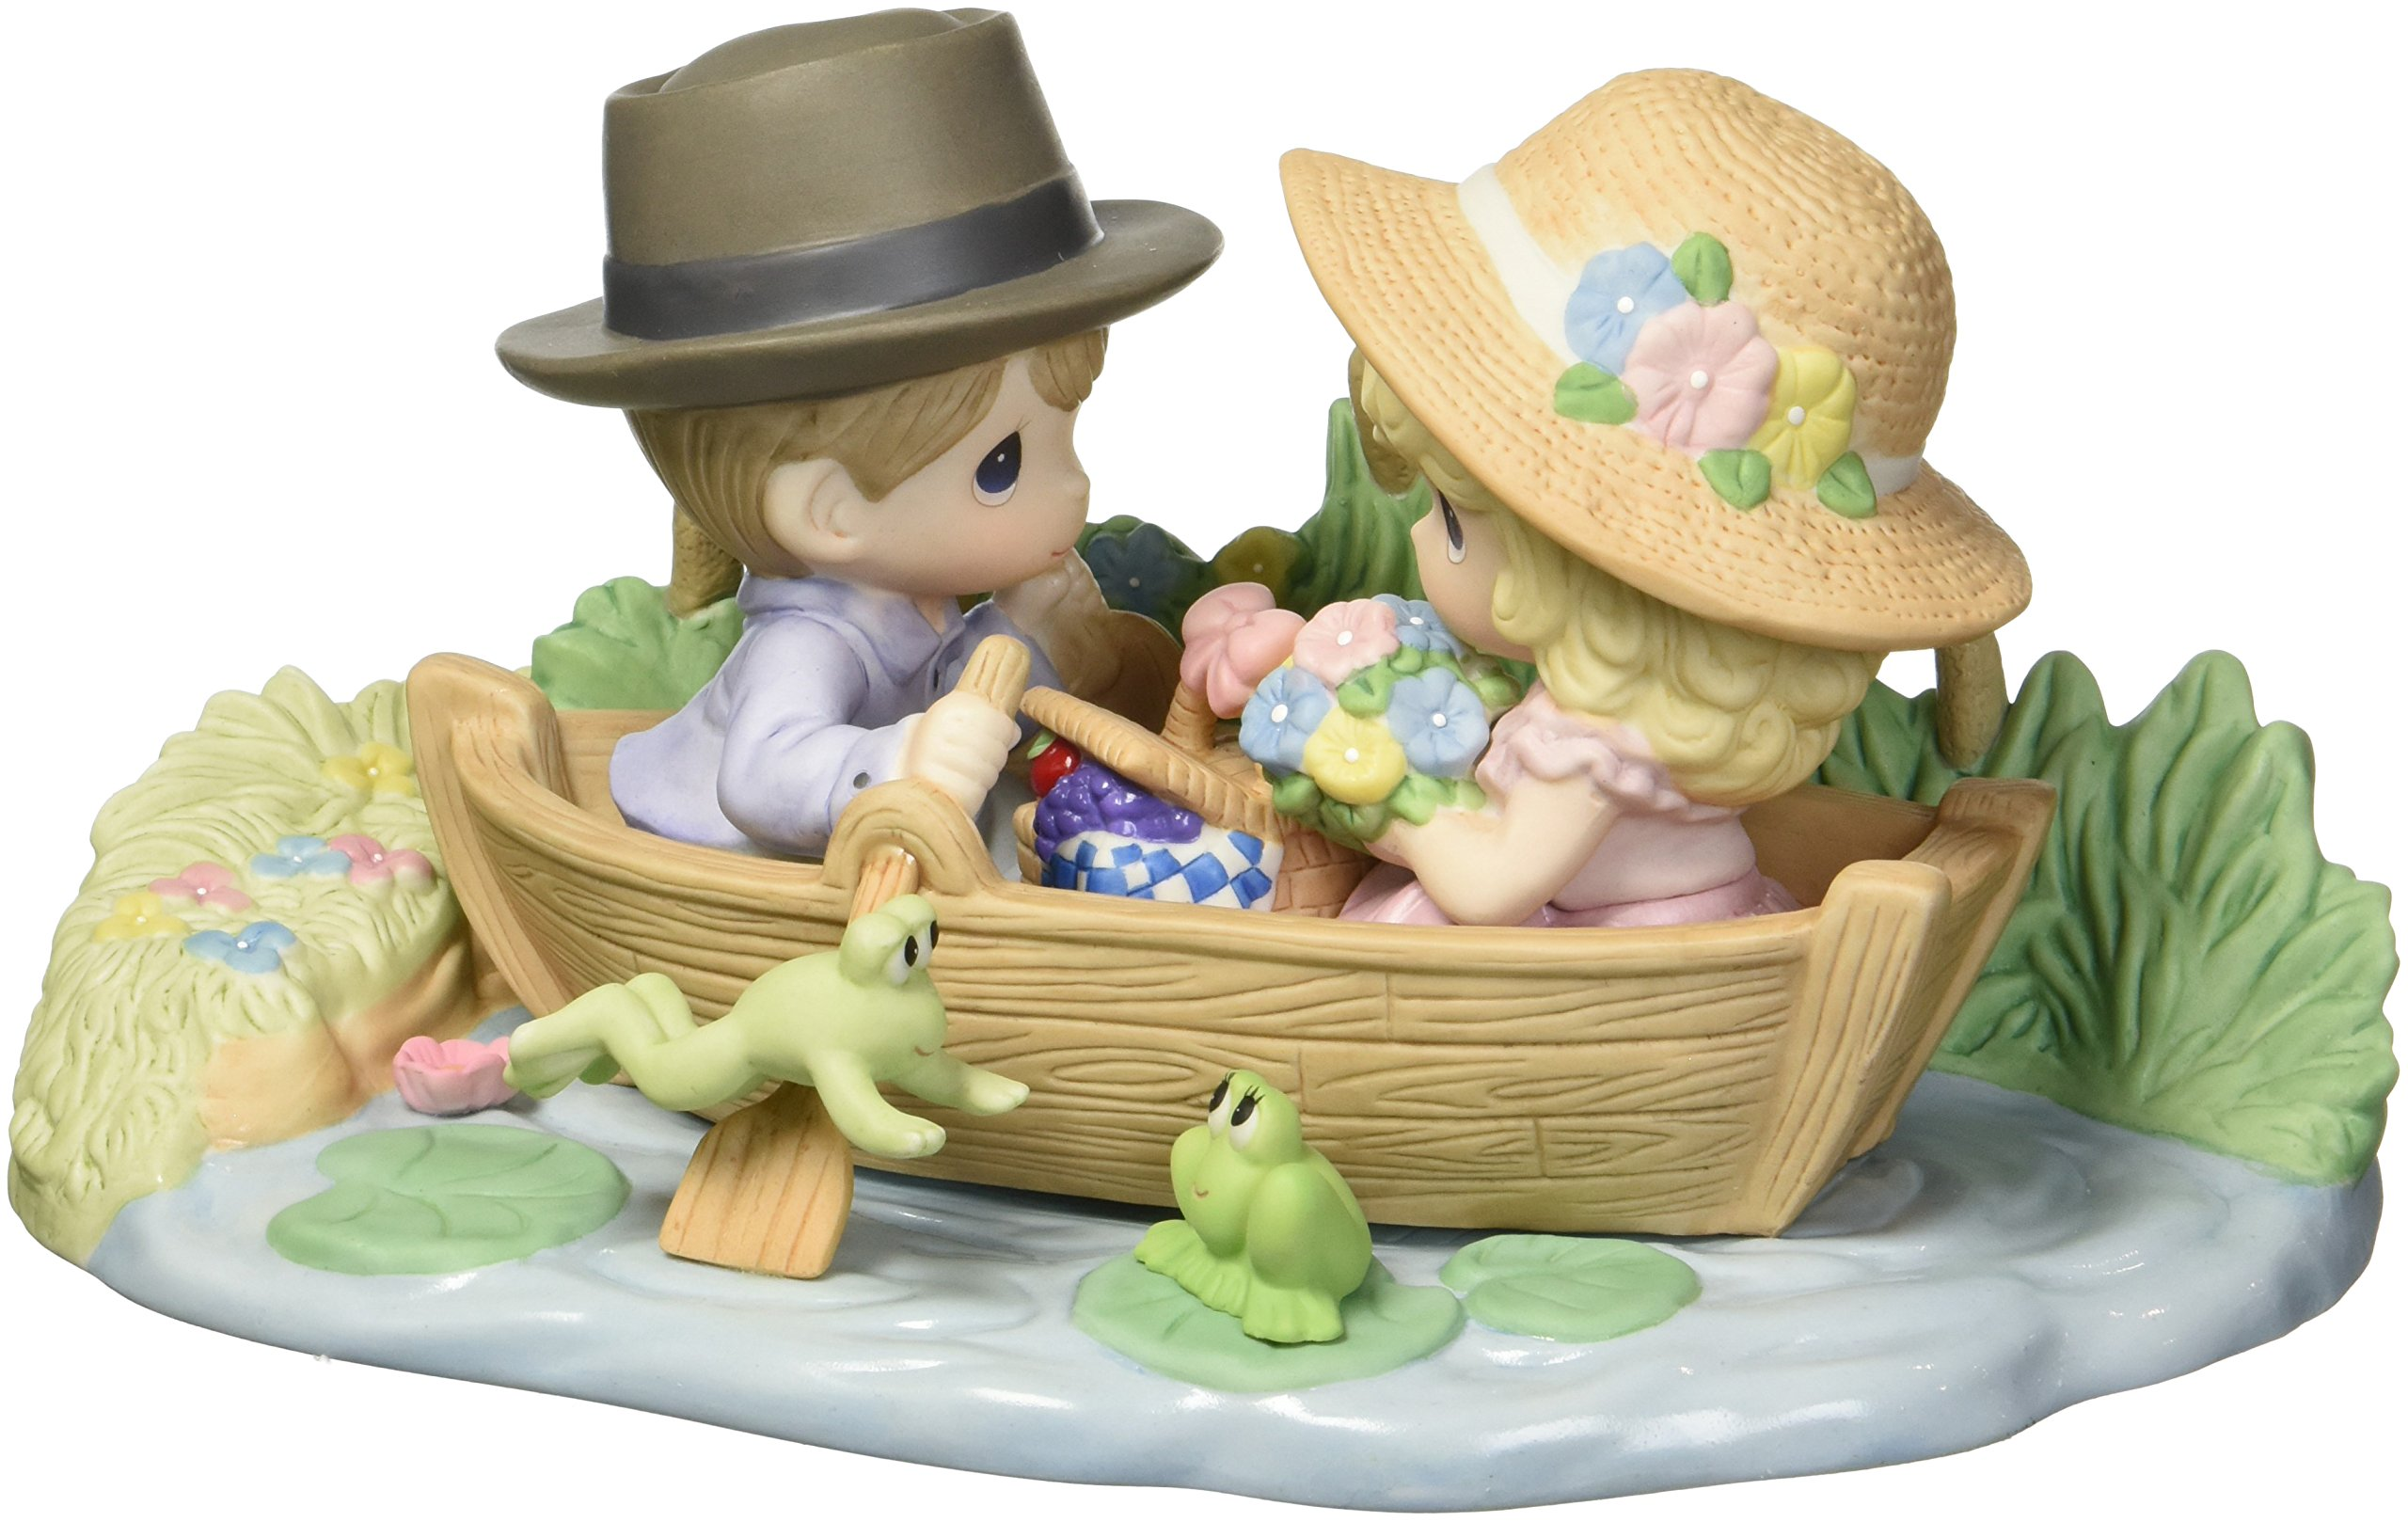 Precious Moments Limited Edition You Make My Heart Leap Couple in Row Boat Bisque Porcelain Home Decor Collectible Figurine 173002 by Precious Moments